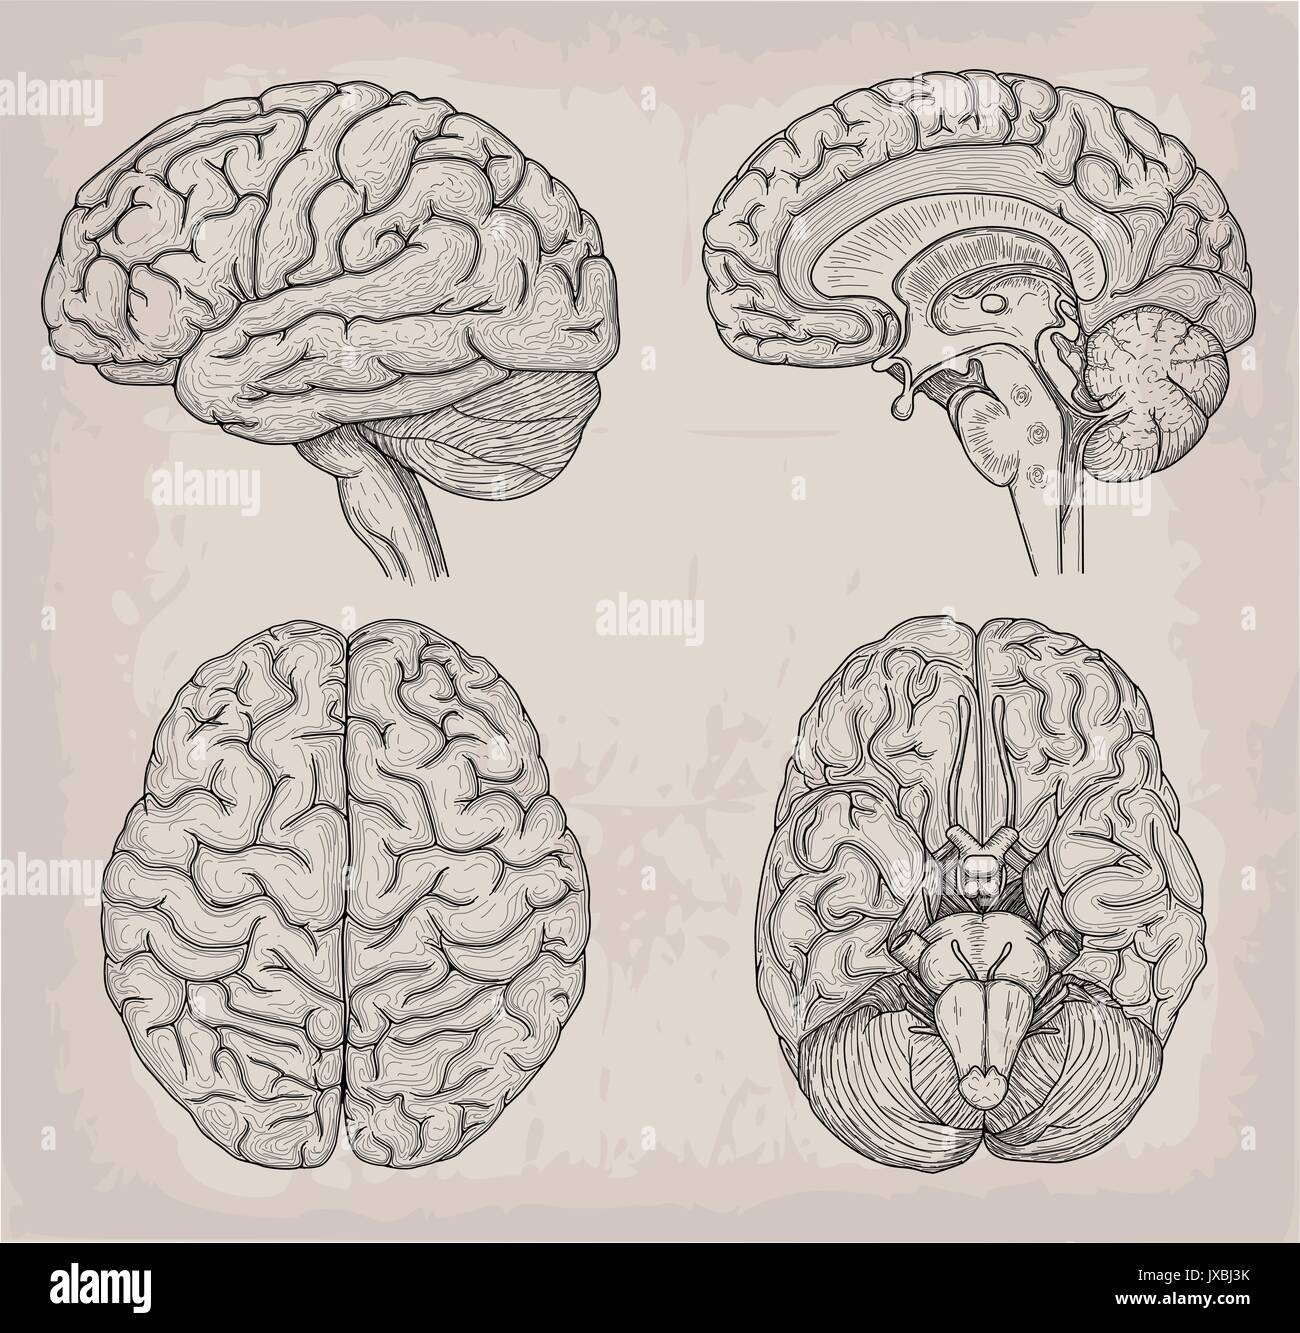 Anatomical Brain Human Illustration Medicine Vector Illustration